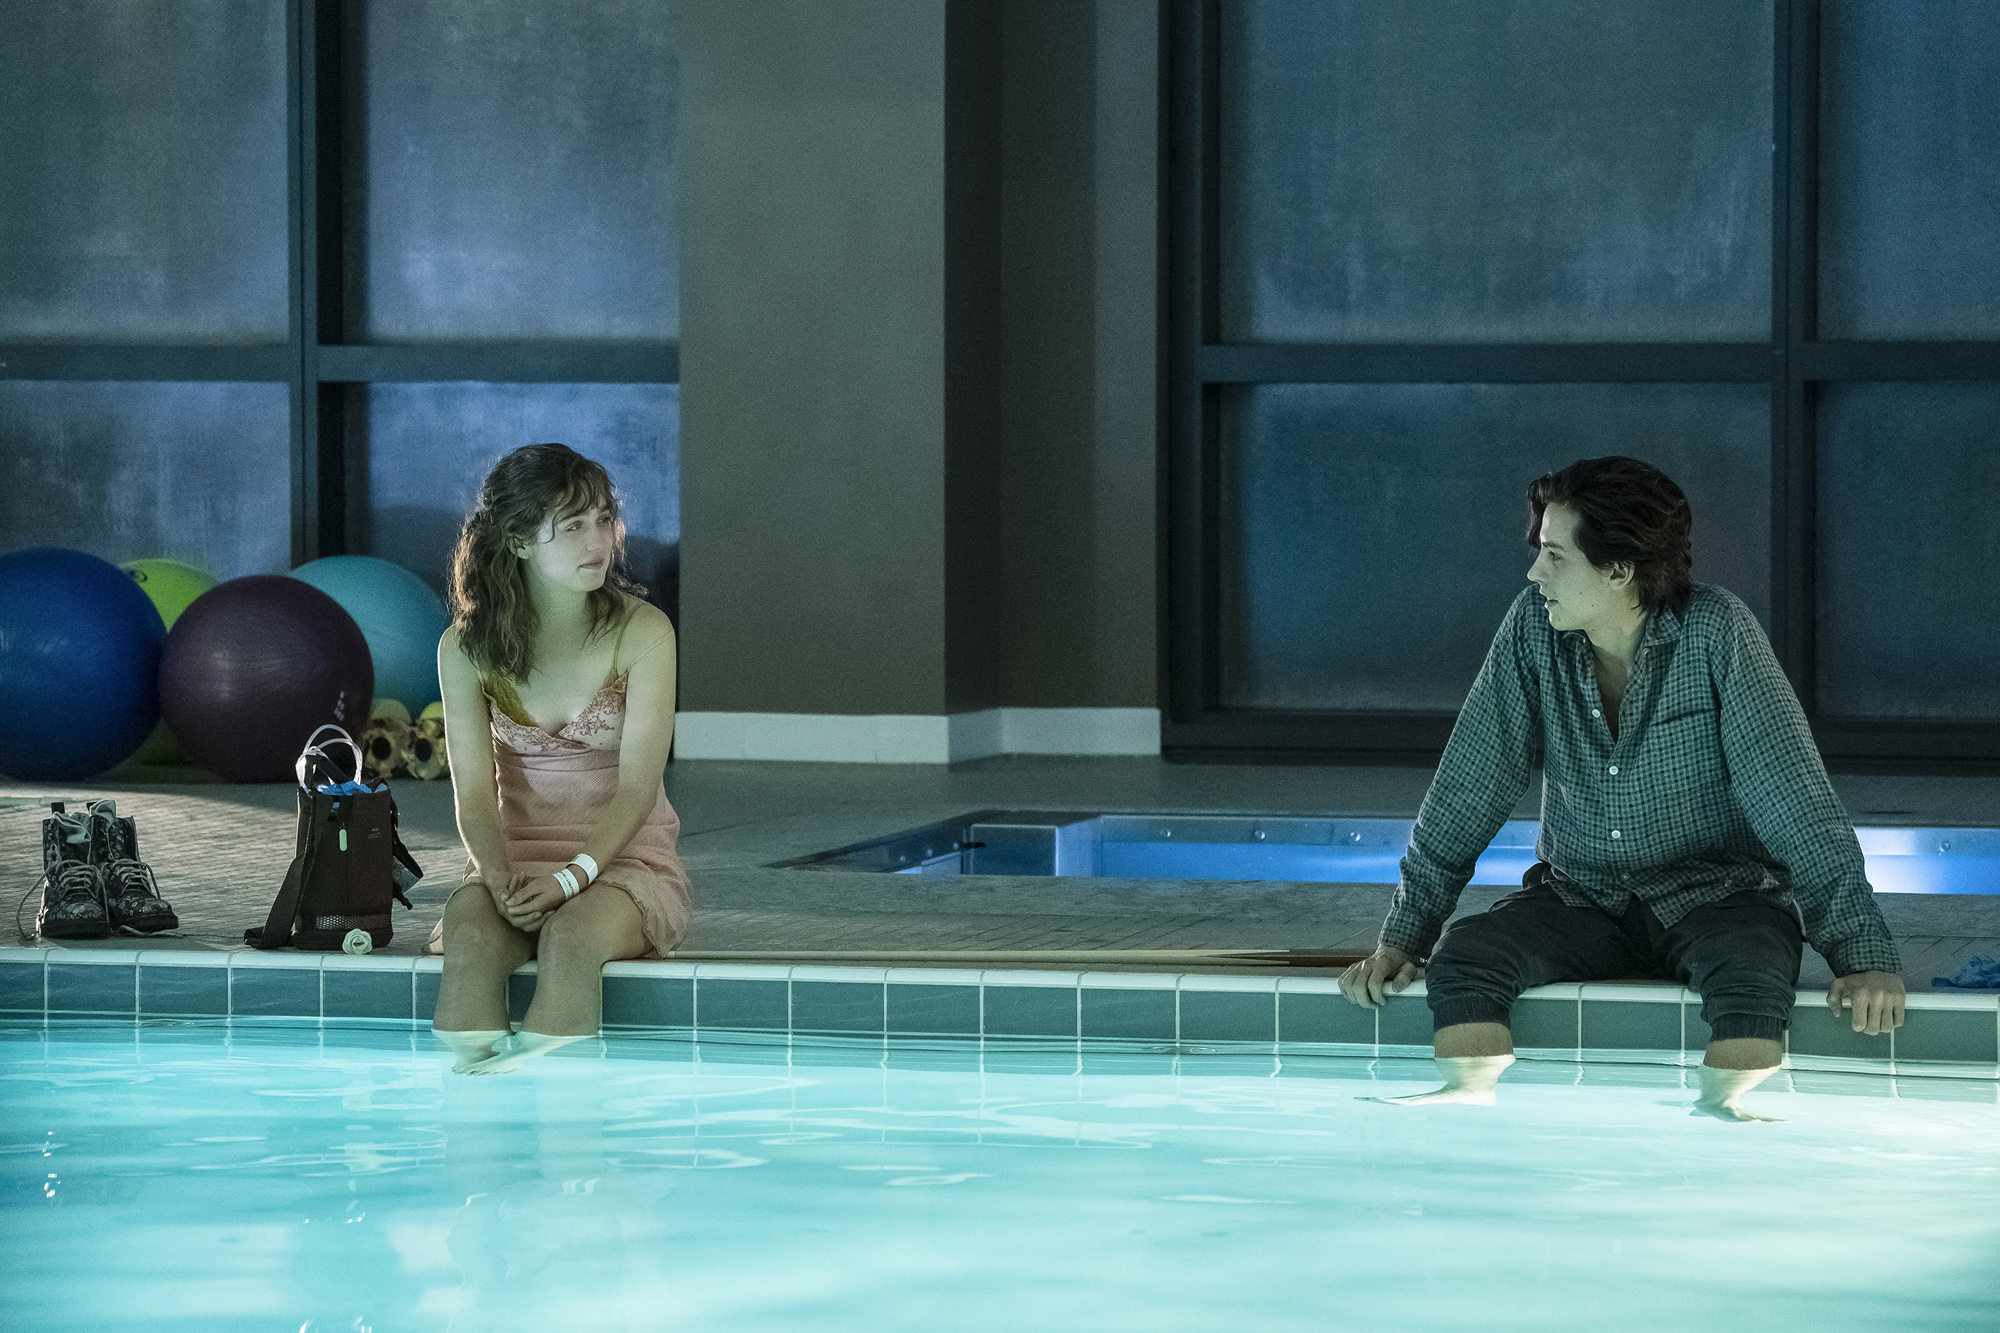 """Stella (Haley Lu Richardson, left) and Will (Cole Sprouse), teens in love and battling cystic fibrosis, share a date, at a distance, in the romantic drama """"Five Feet Apart."""" (Photo by Alfonso Bresciani, courtesy CBS Films / Lionsgate)"""